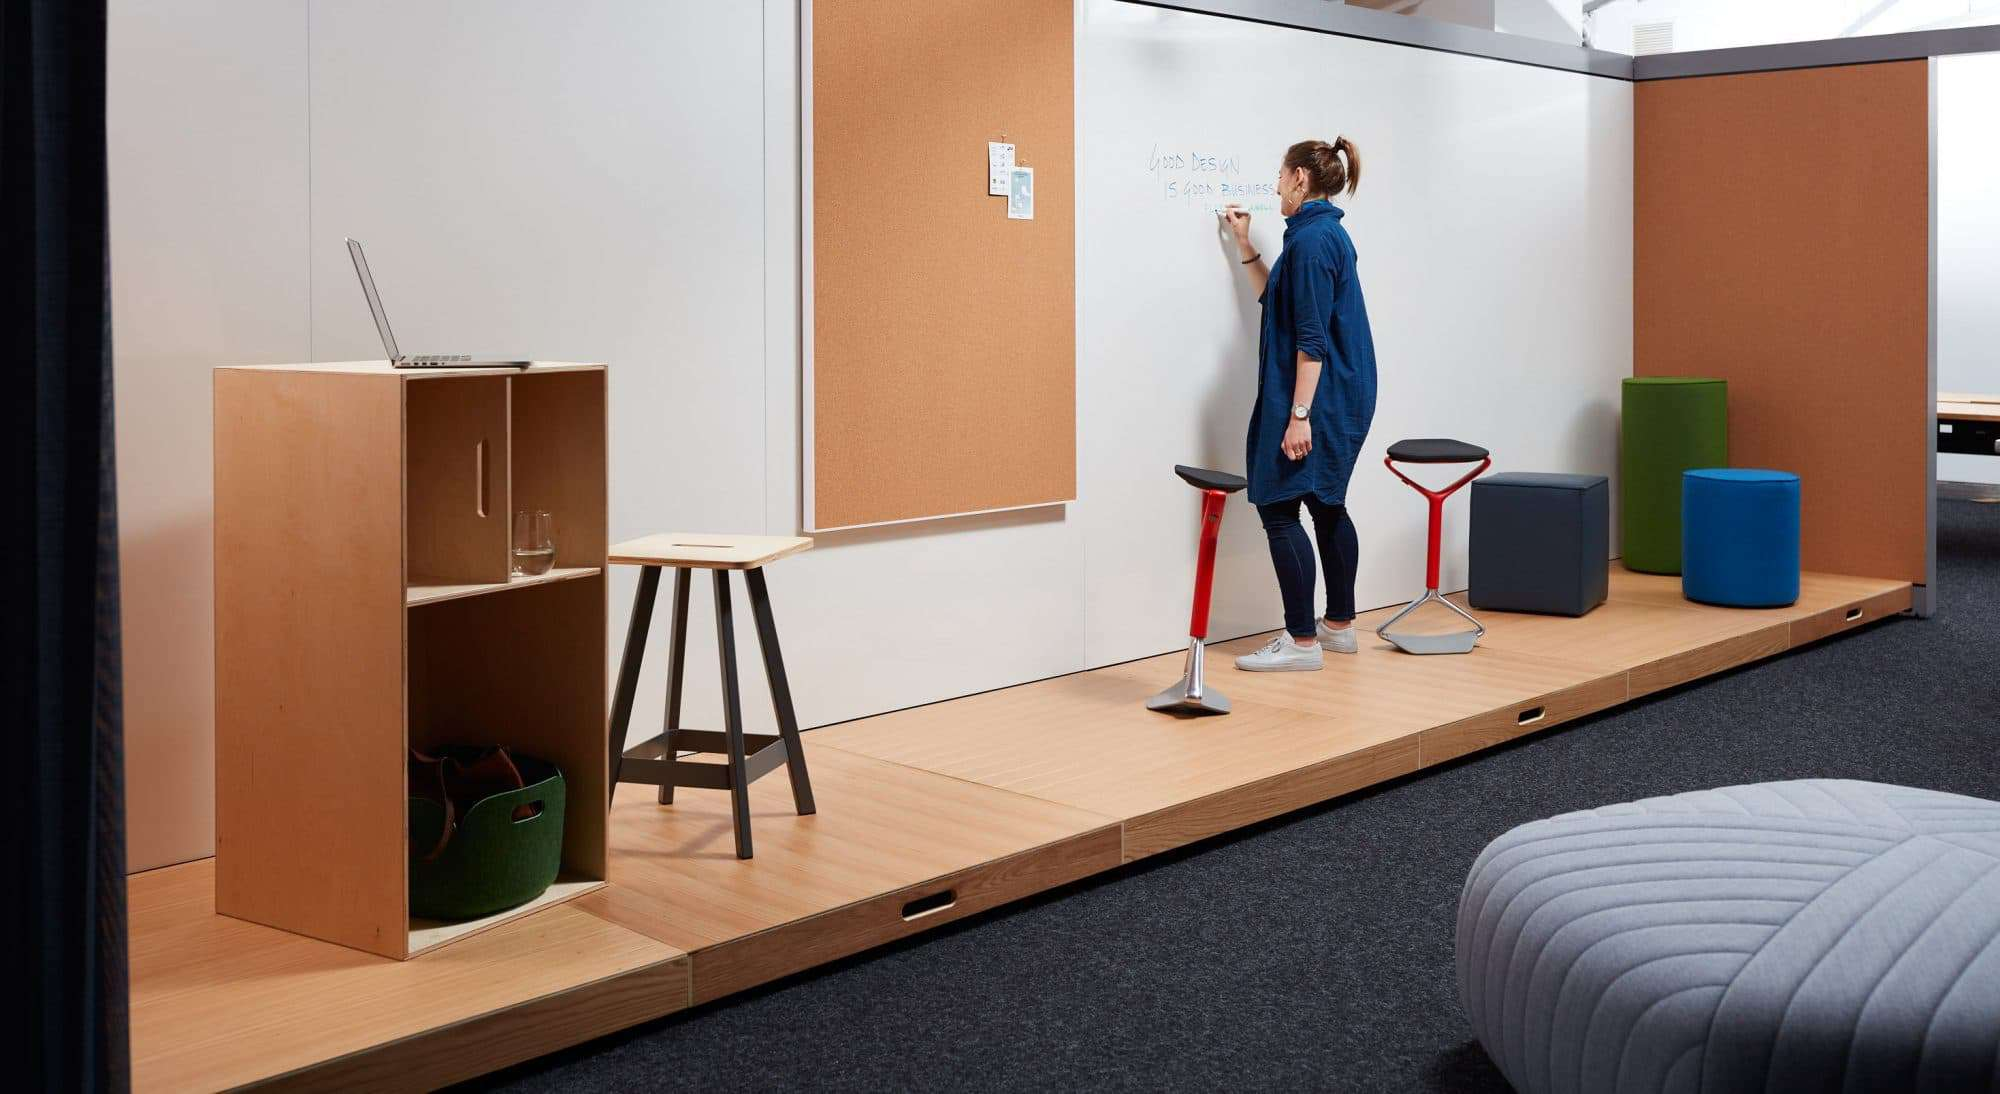 Conference room systems provide privacy and connection on Creative Wall  id=87986